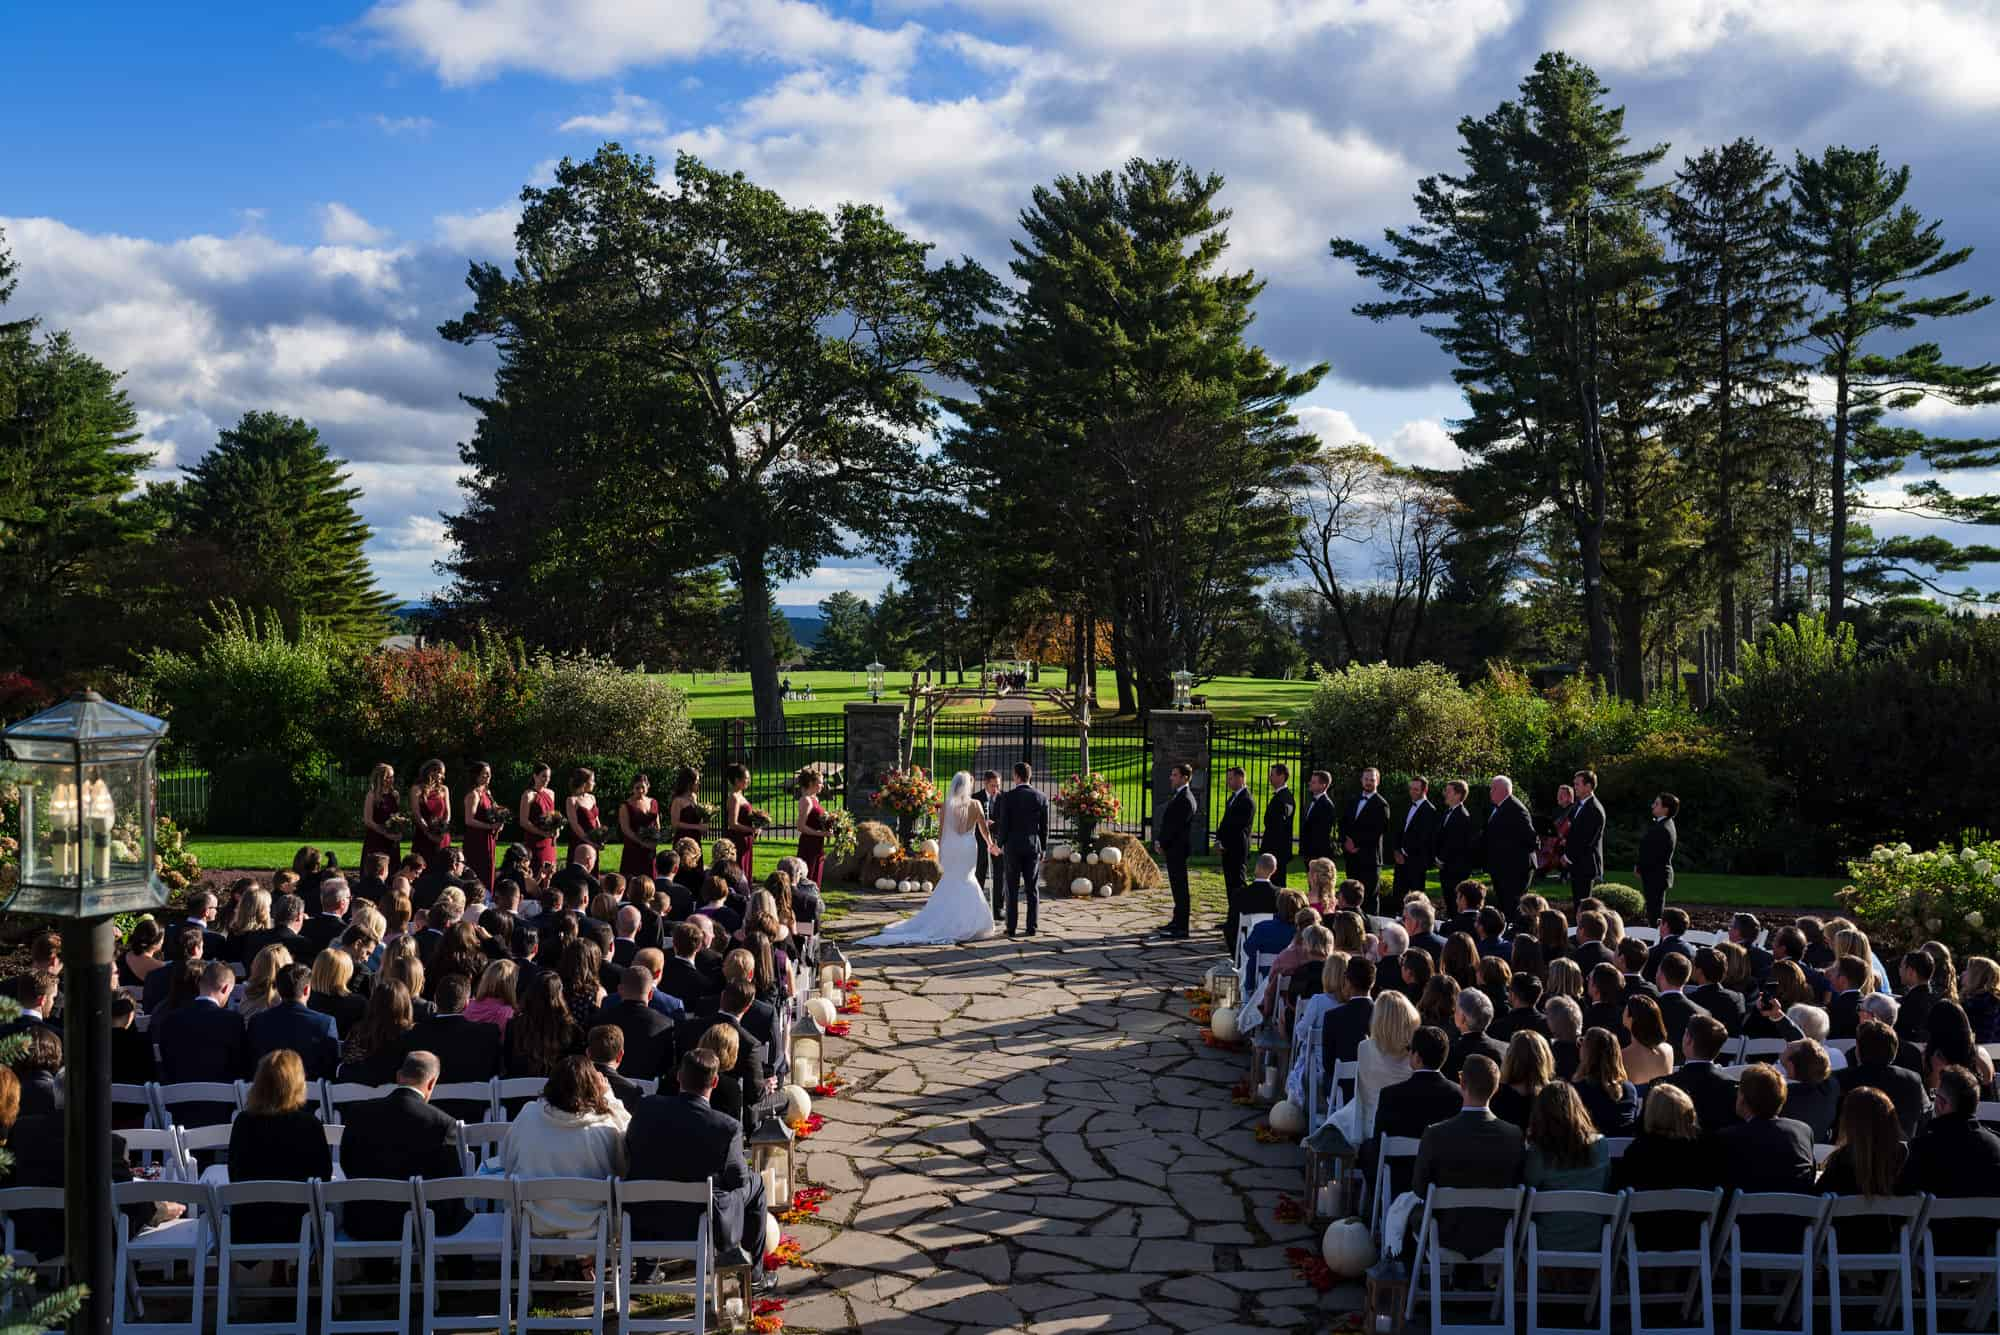 Bride and groom holding hands at outdoor wedding ceremony at Skytop Lodge PA